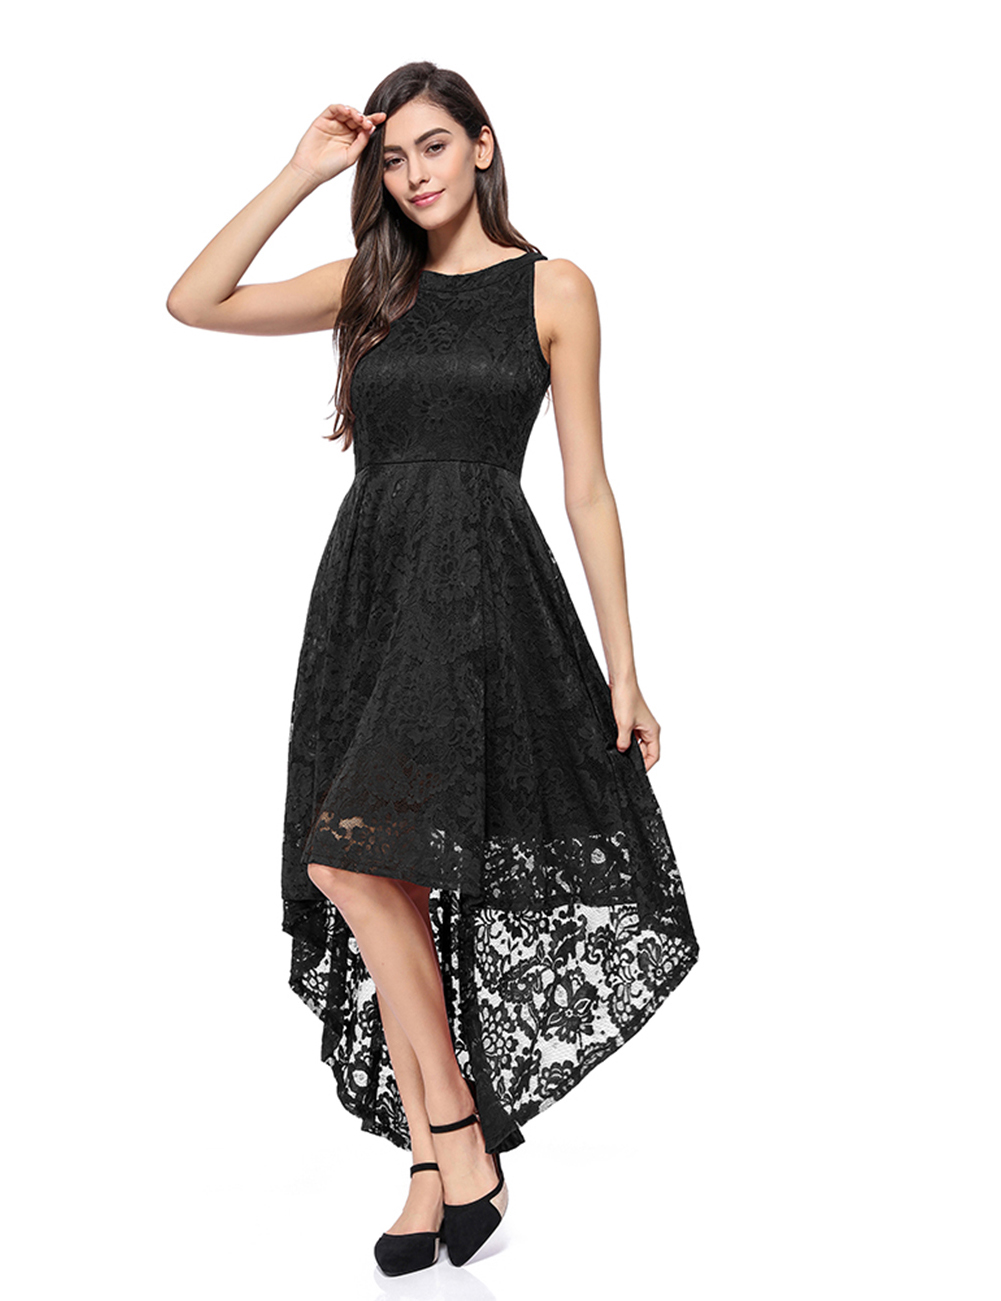 //cdn.affectcloud.com/feelingirldress/upload/imgs/2019-06-11/VZ190800-BK1/VZ190800-BK1-5.jpg